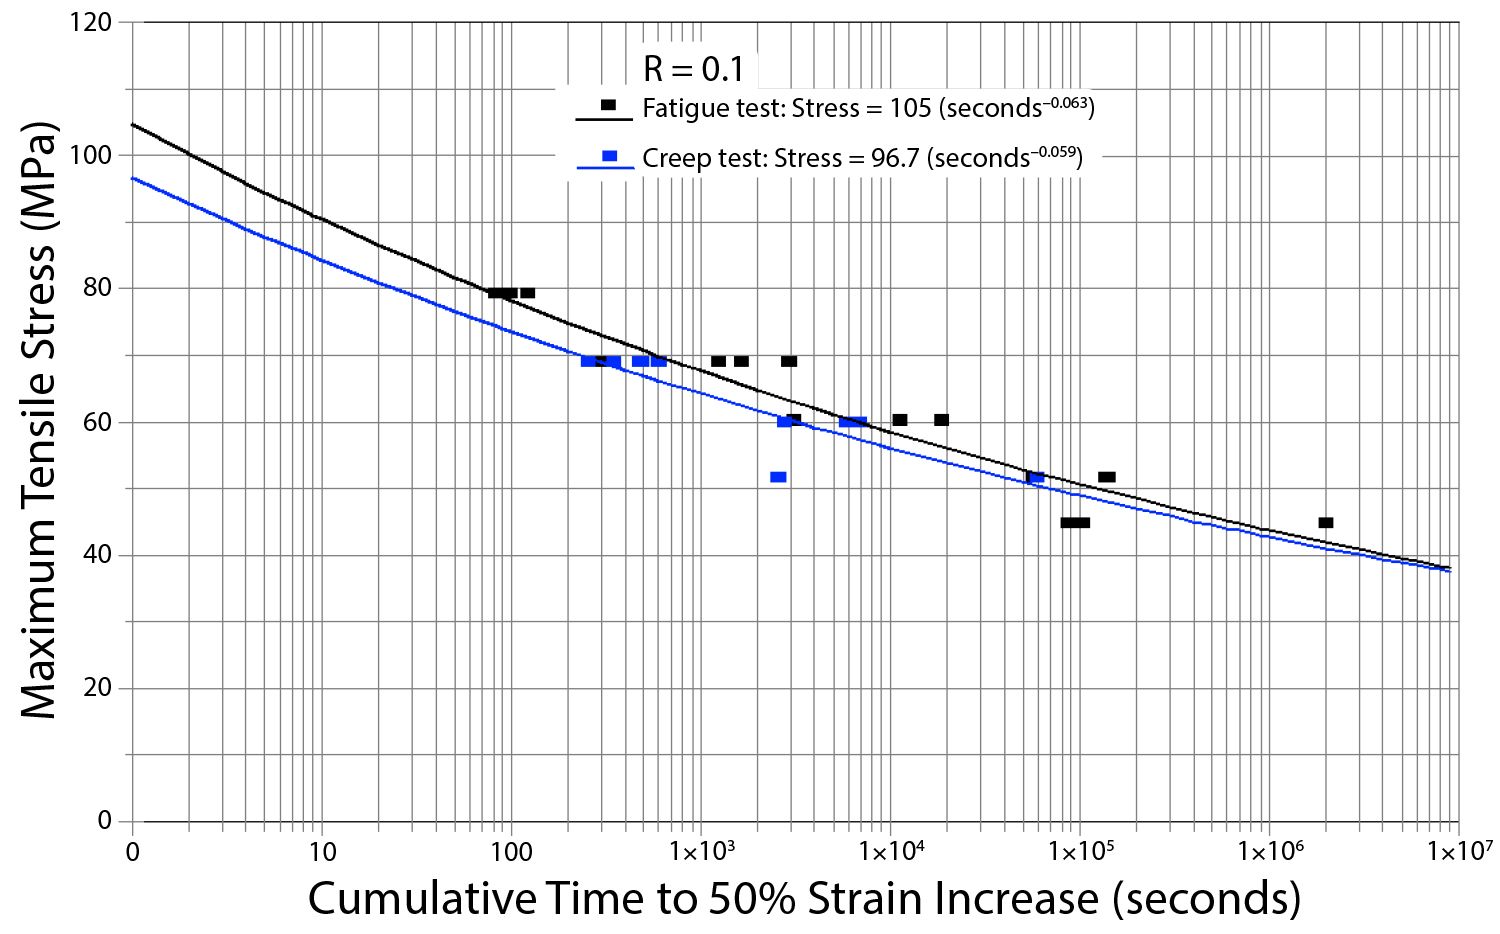 Biaxial laminates subjected to a constant load (creep test) or an oscillating load (fatigue test) show similar time to failure depending only on the cumulative time under load rather than number of cycles.